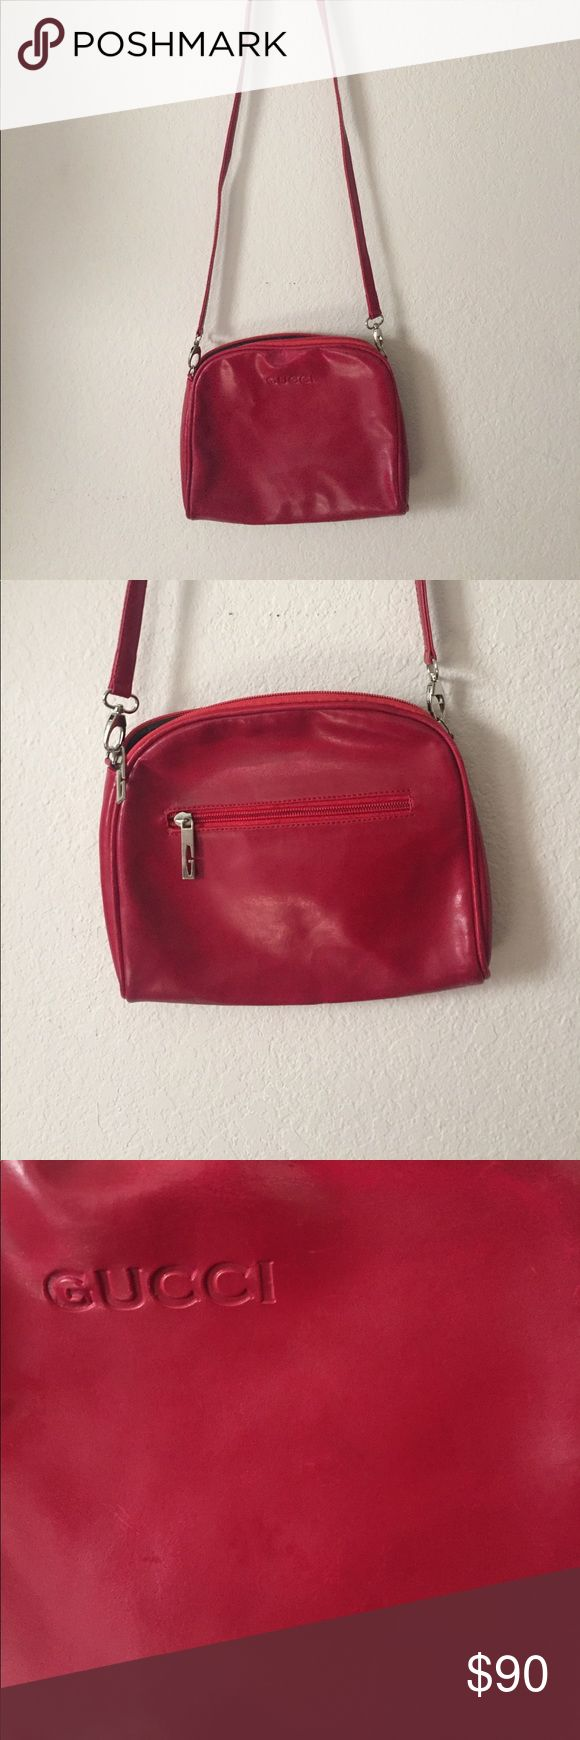 Vintage Gucci Purse Red leather over-the-shoulder bag. Some signs of wear on the leather but has held up very well. Do NOT try to spam me on this post- I will report and block you immediately. Gucci Bags Crossbody Bags